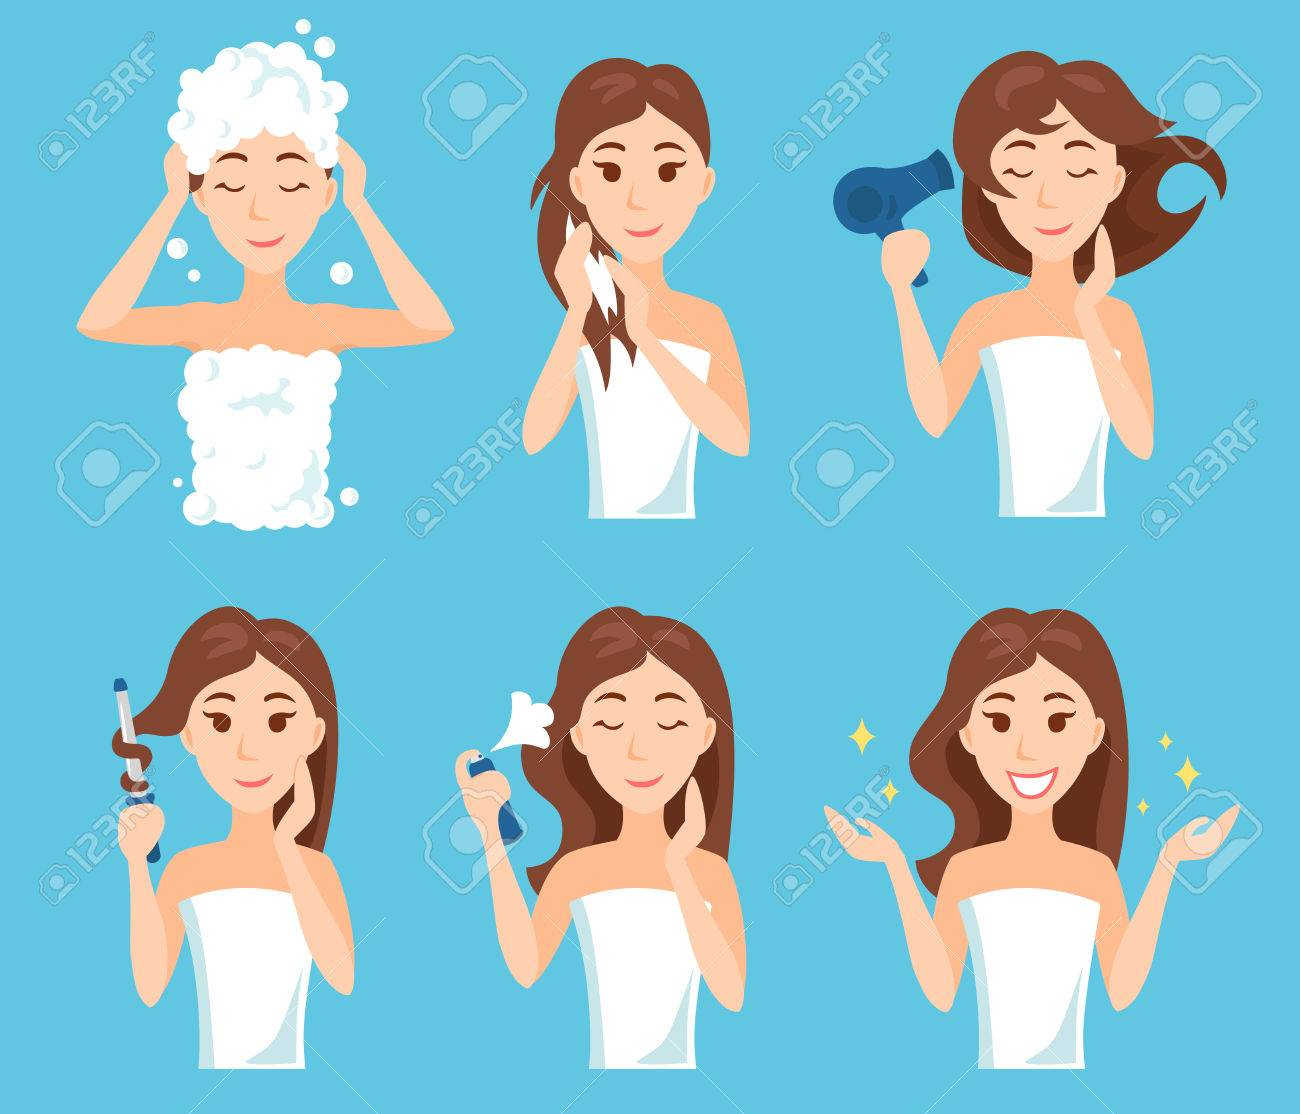 Attractive Young Woman Wash Care And Style Her Hair Hair Treatment Royalty Free Cliparts Vectors And Stock Illustration Image 79167080